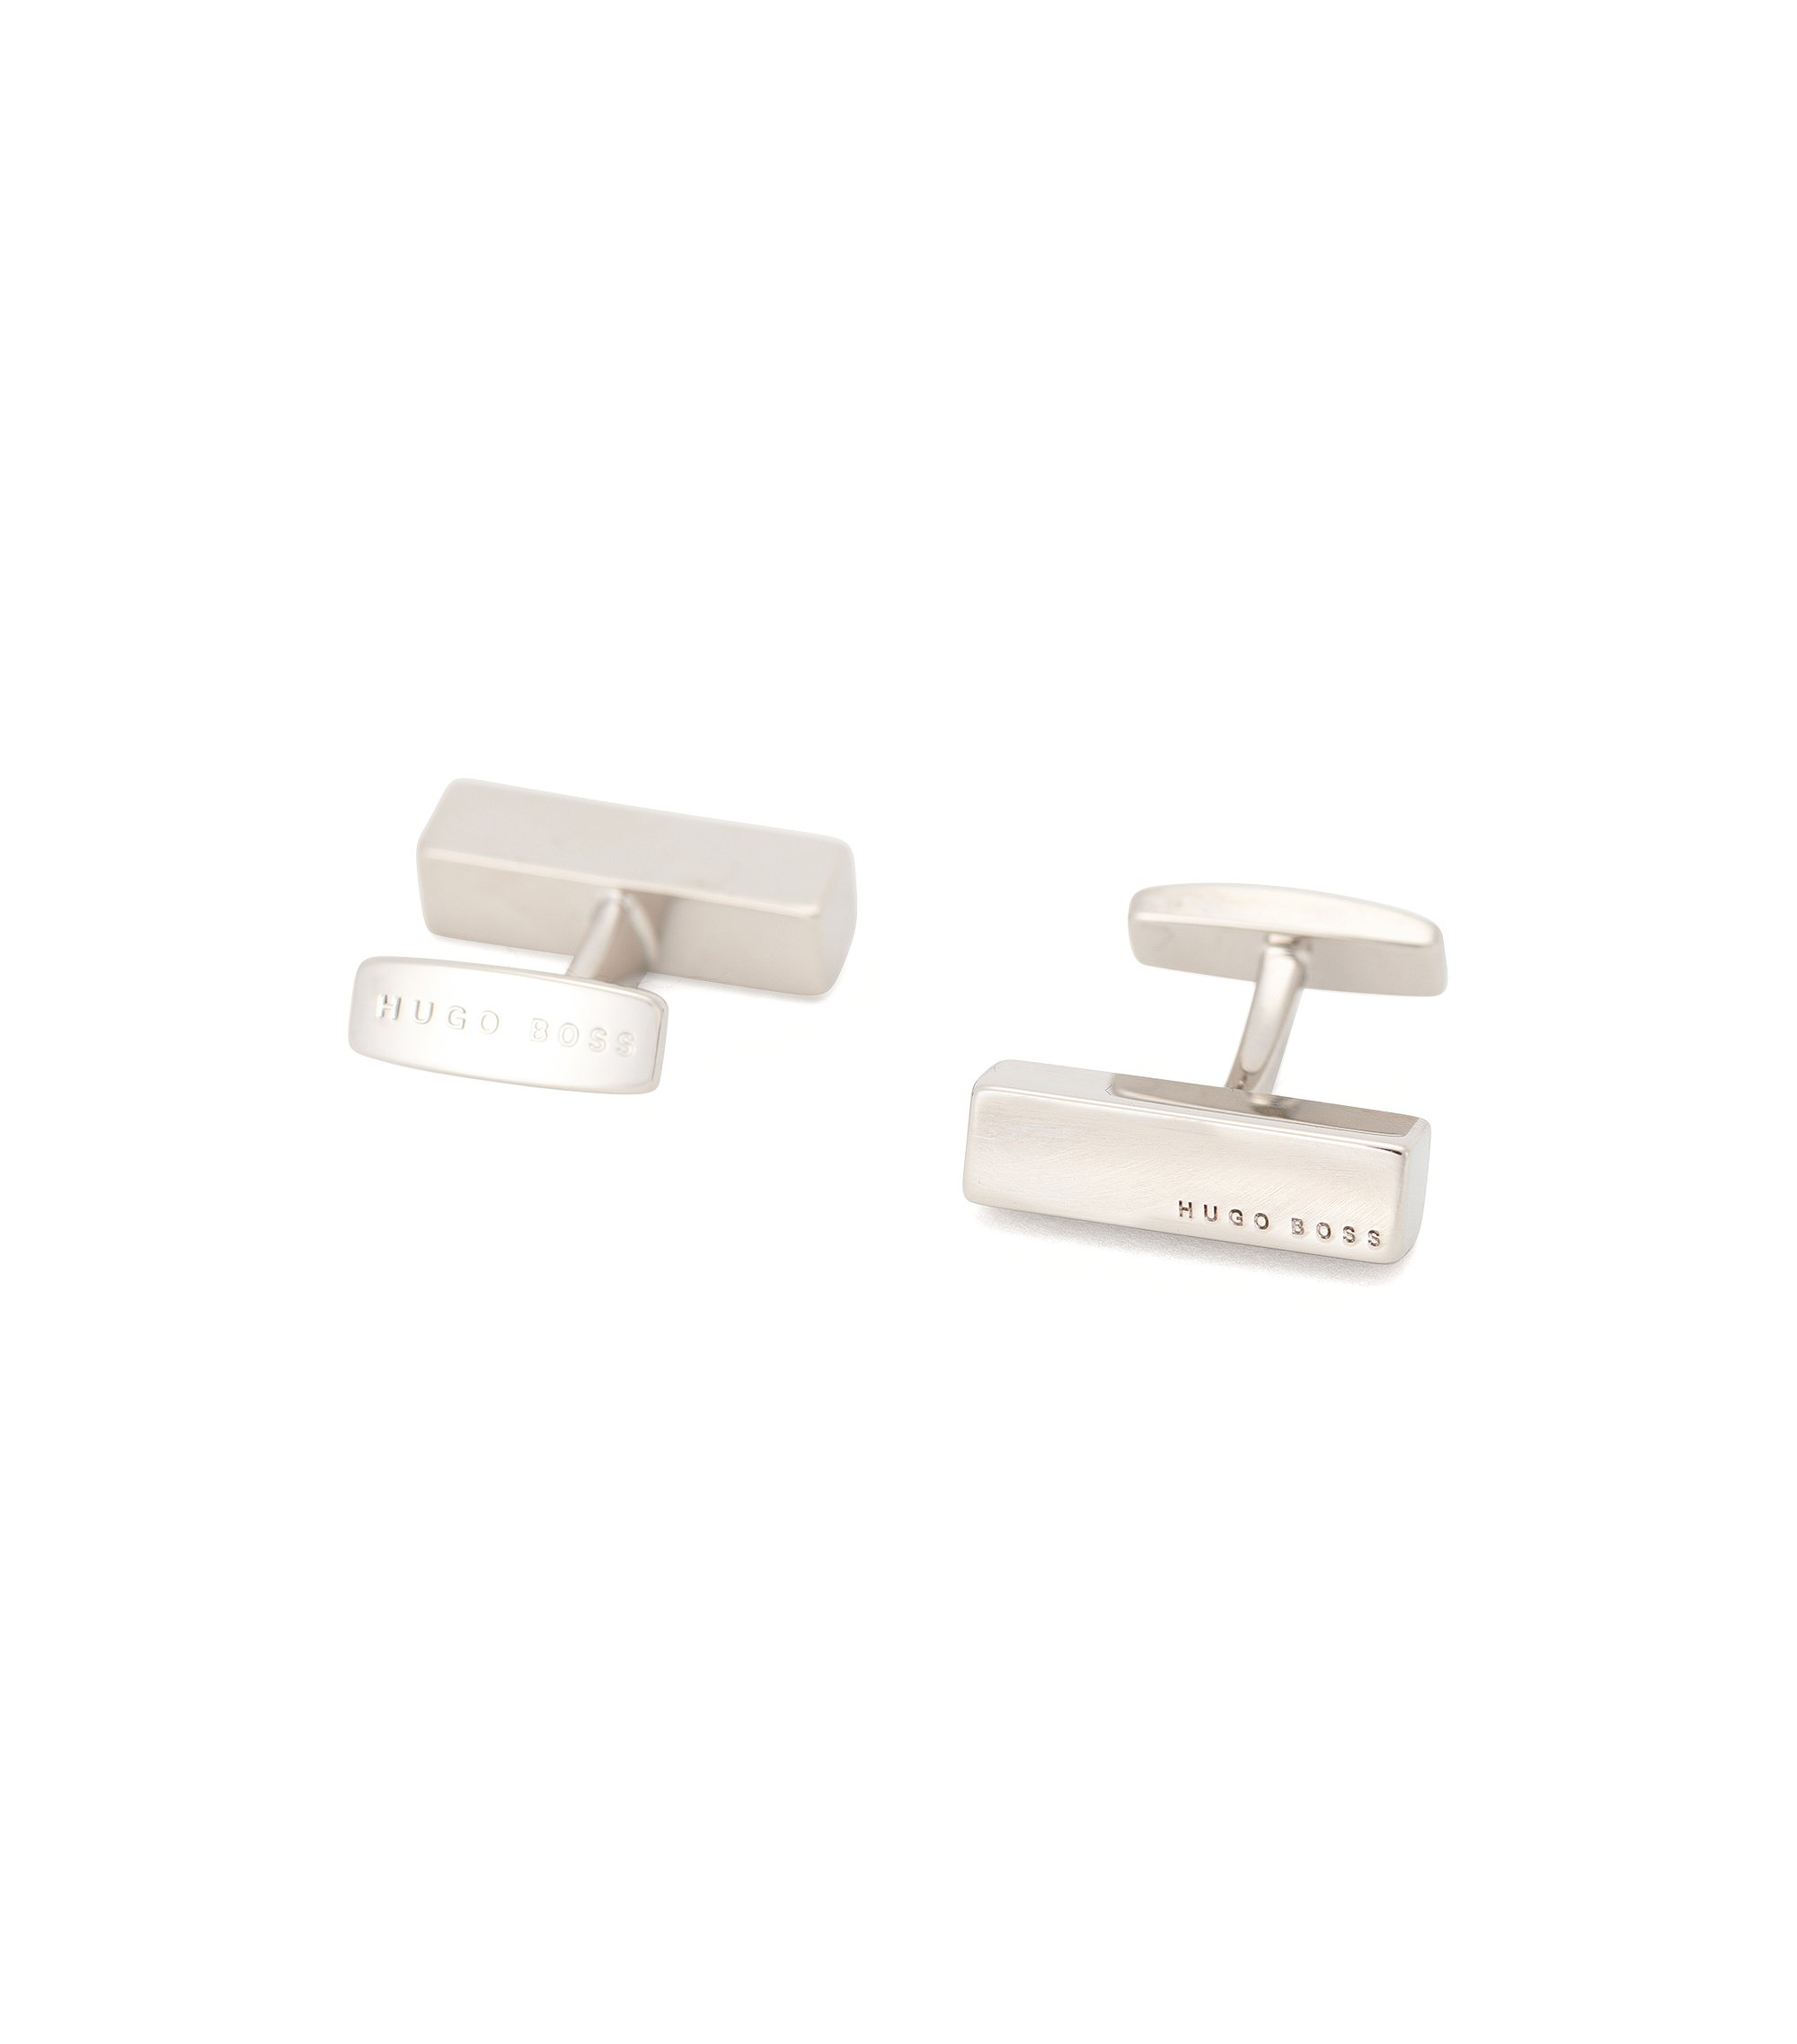 Bar-shaped cufflinks in polished metal, Silver